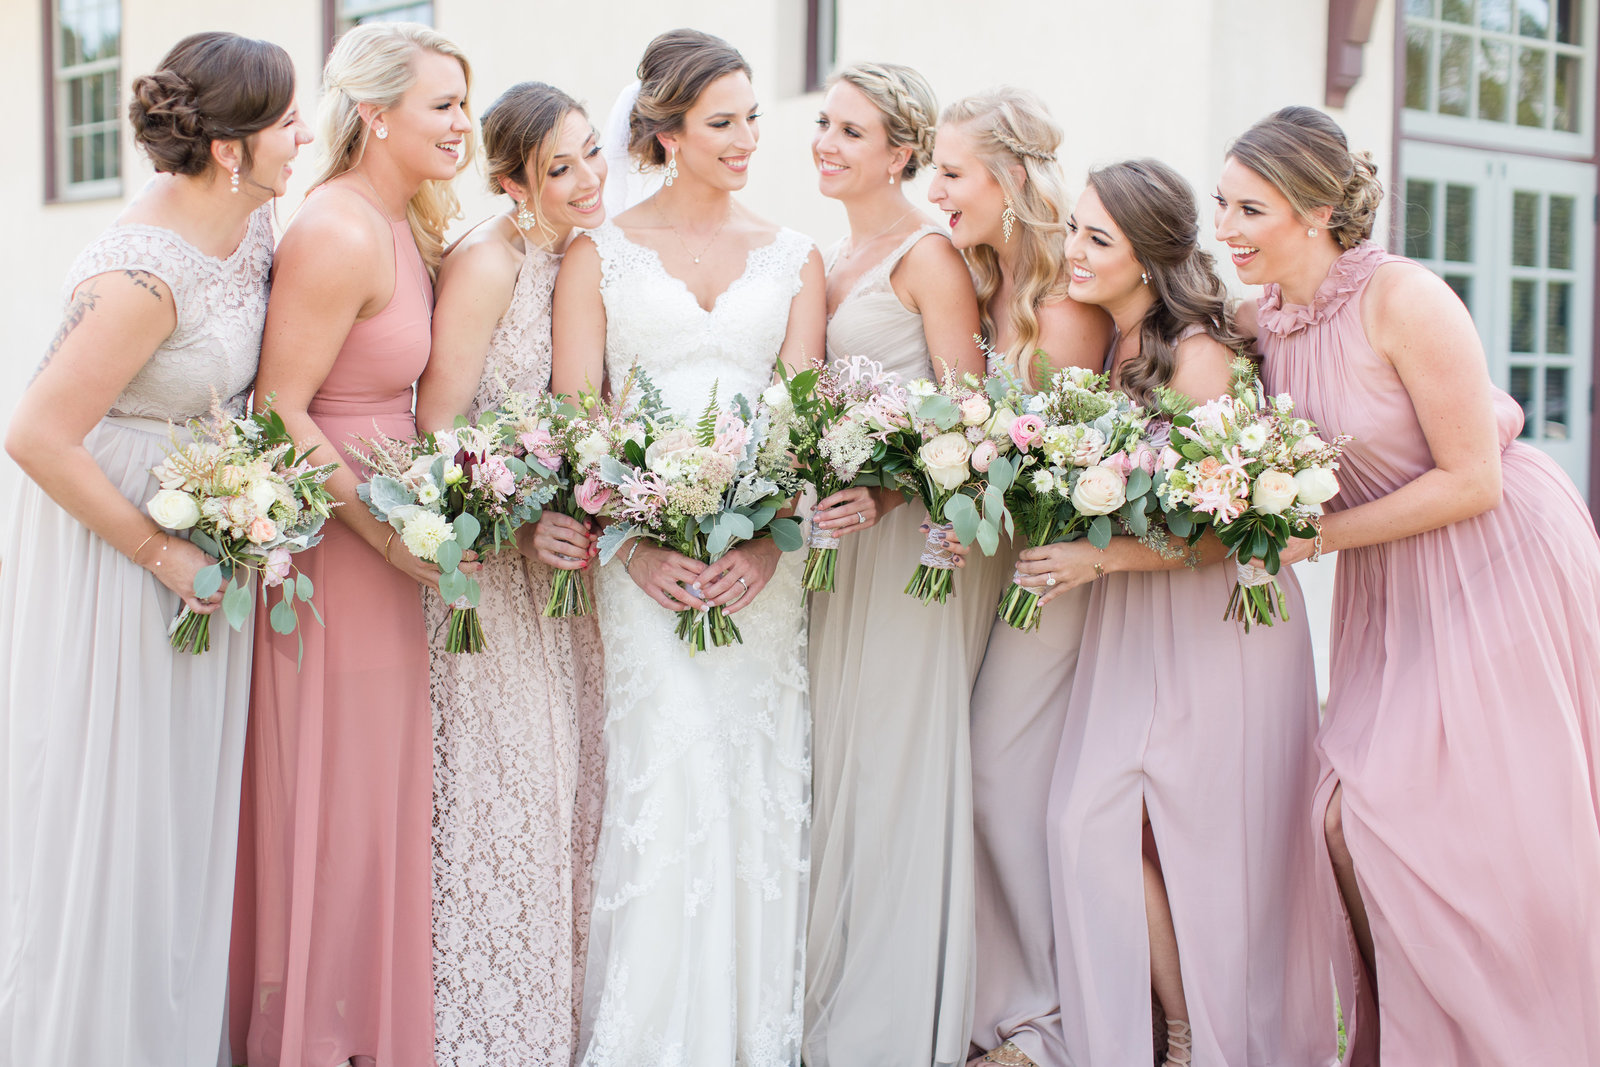 Beautiful wedding-stylish bridal party-Fair Barn Wedding, Pinehurst NC